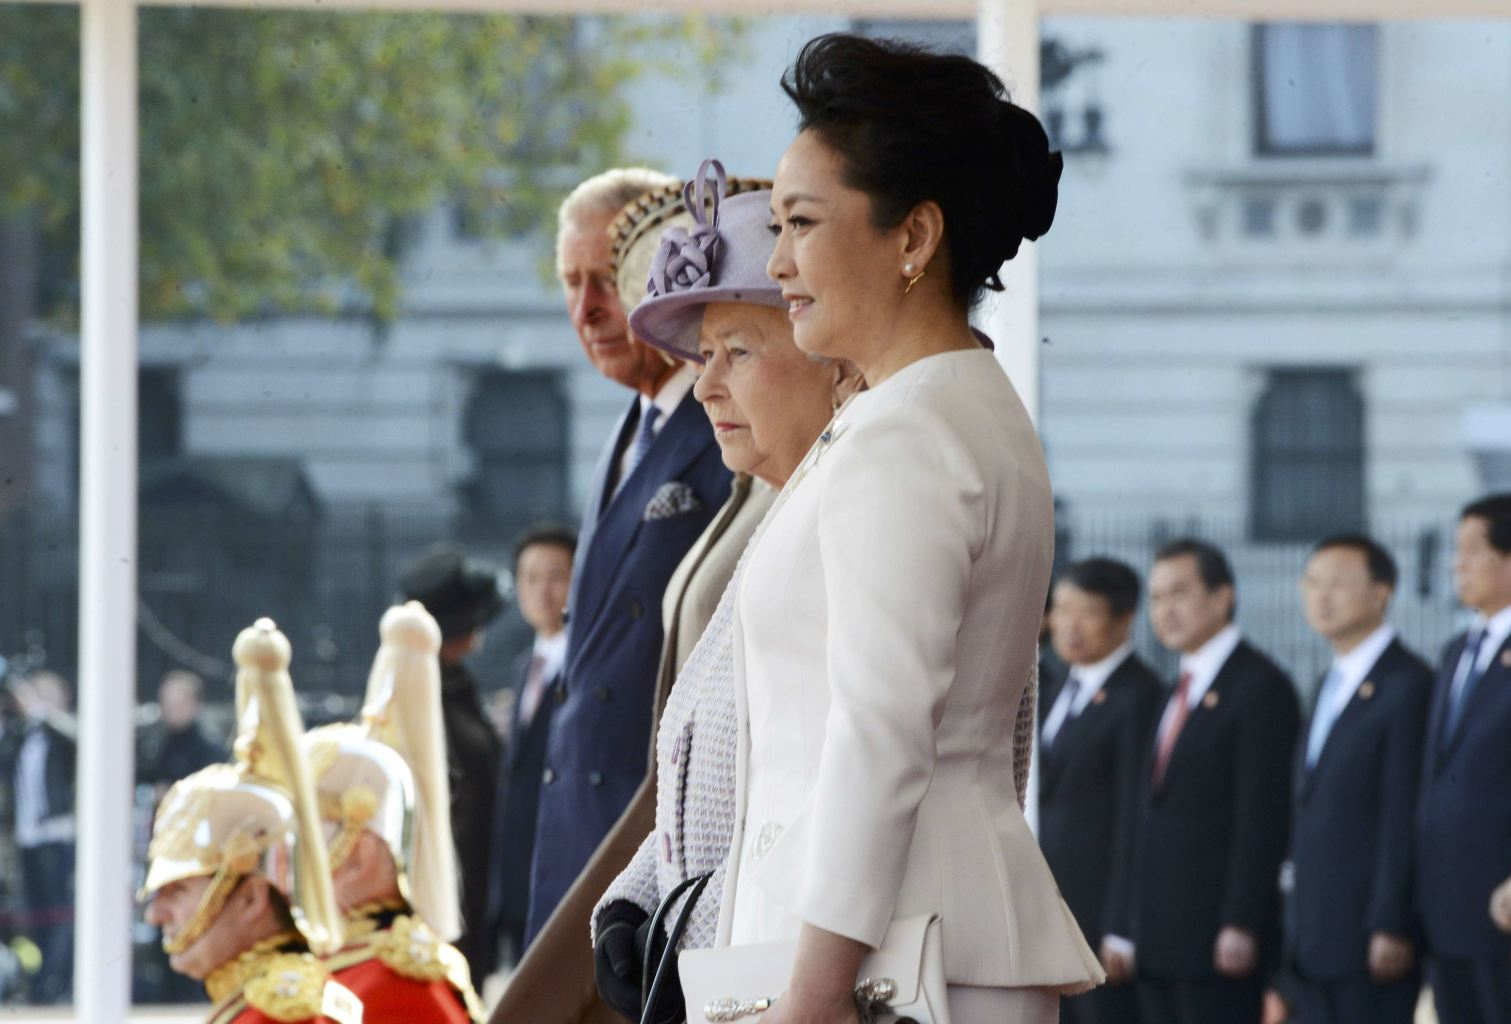 ... Xi's official welcome ceremony in central London, Britain October 20